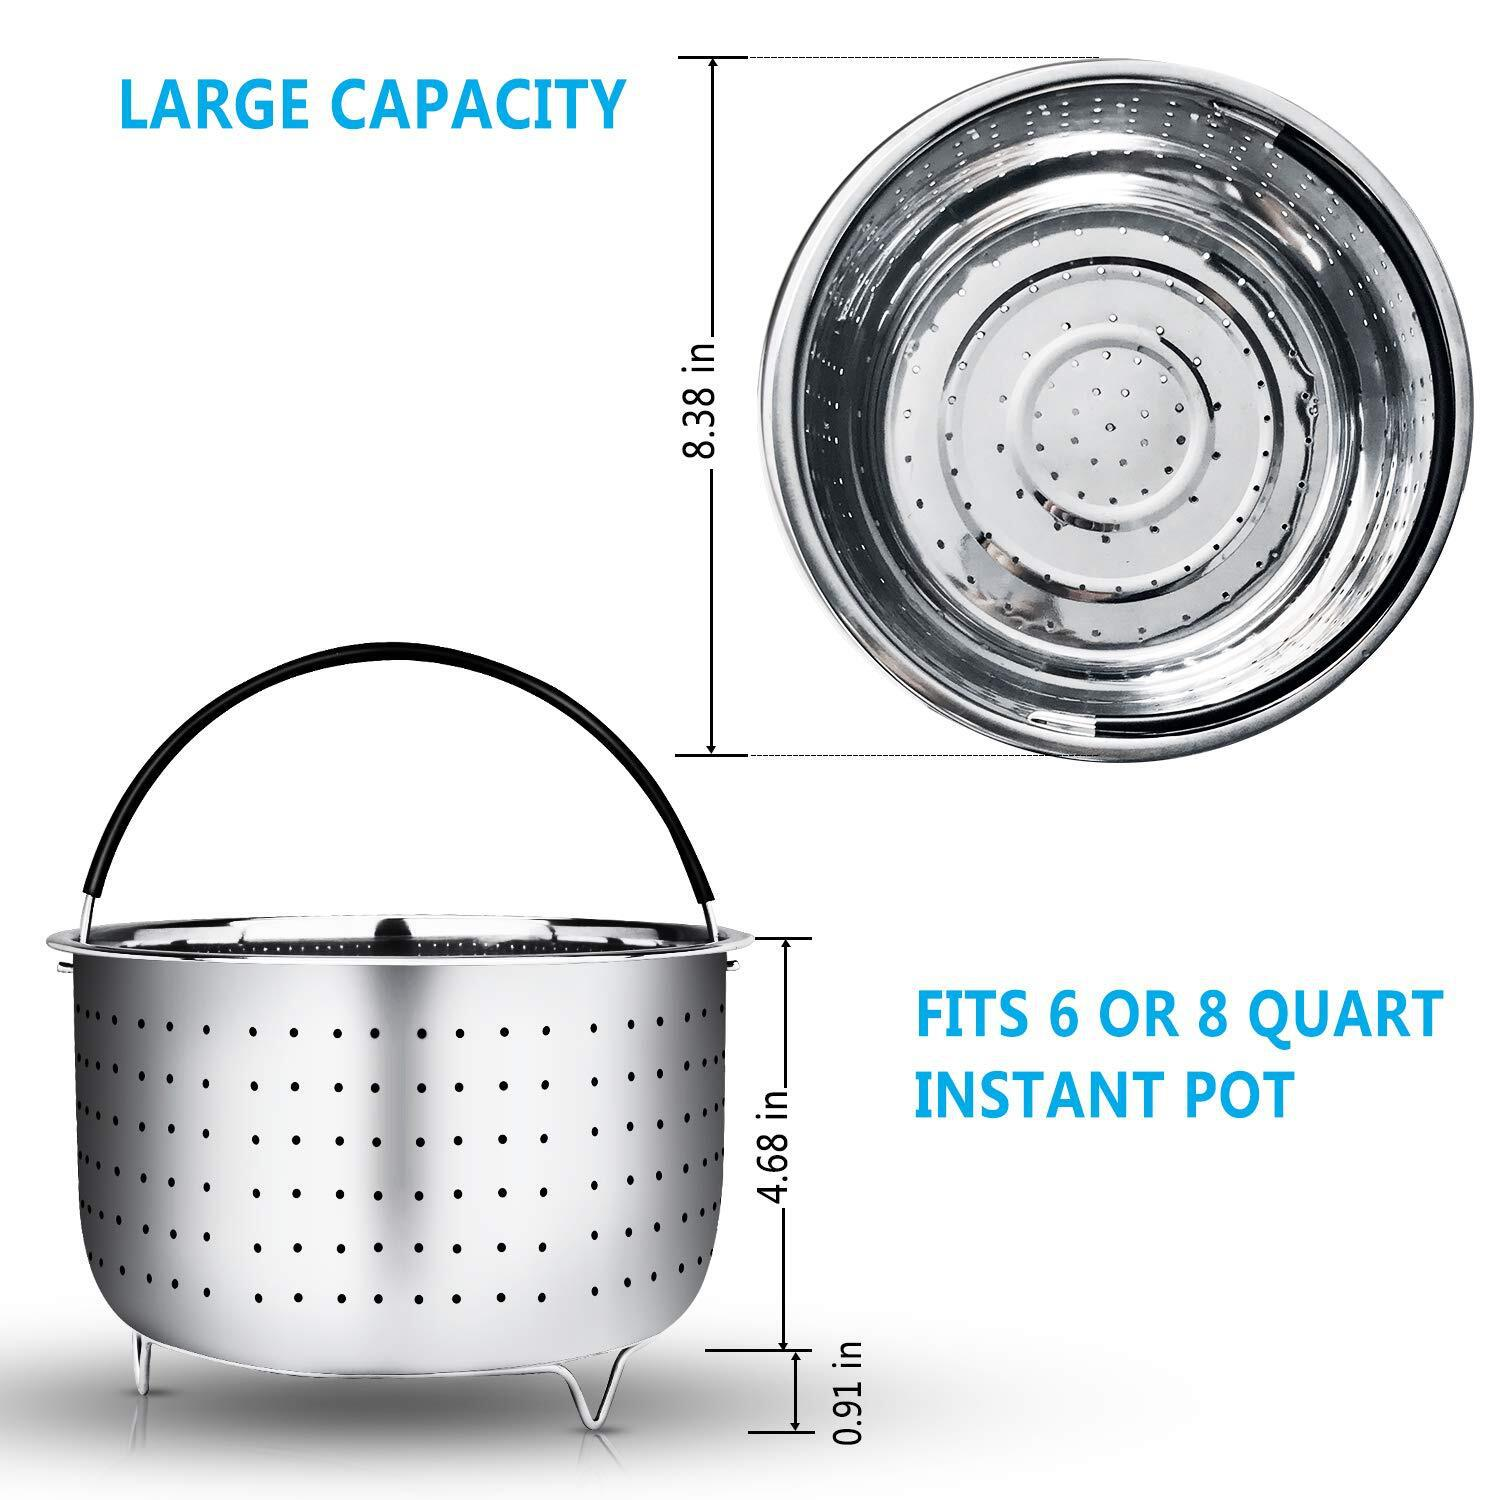 Stainless Steel Steam Basket 304 Material Washing Vegetable Basket Instant Pot Steaming Rack Applicable 5.6. 8QT